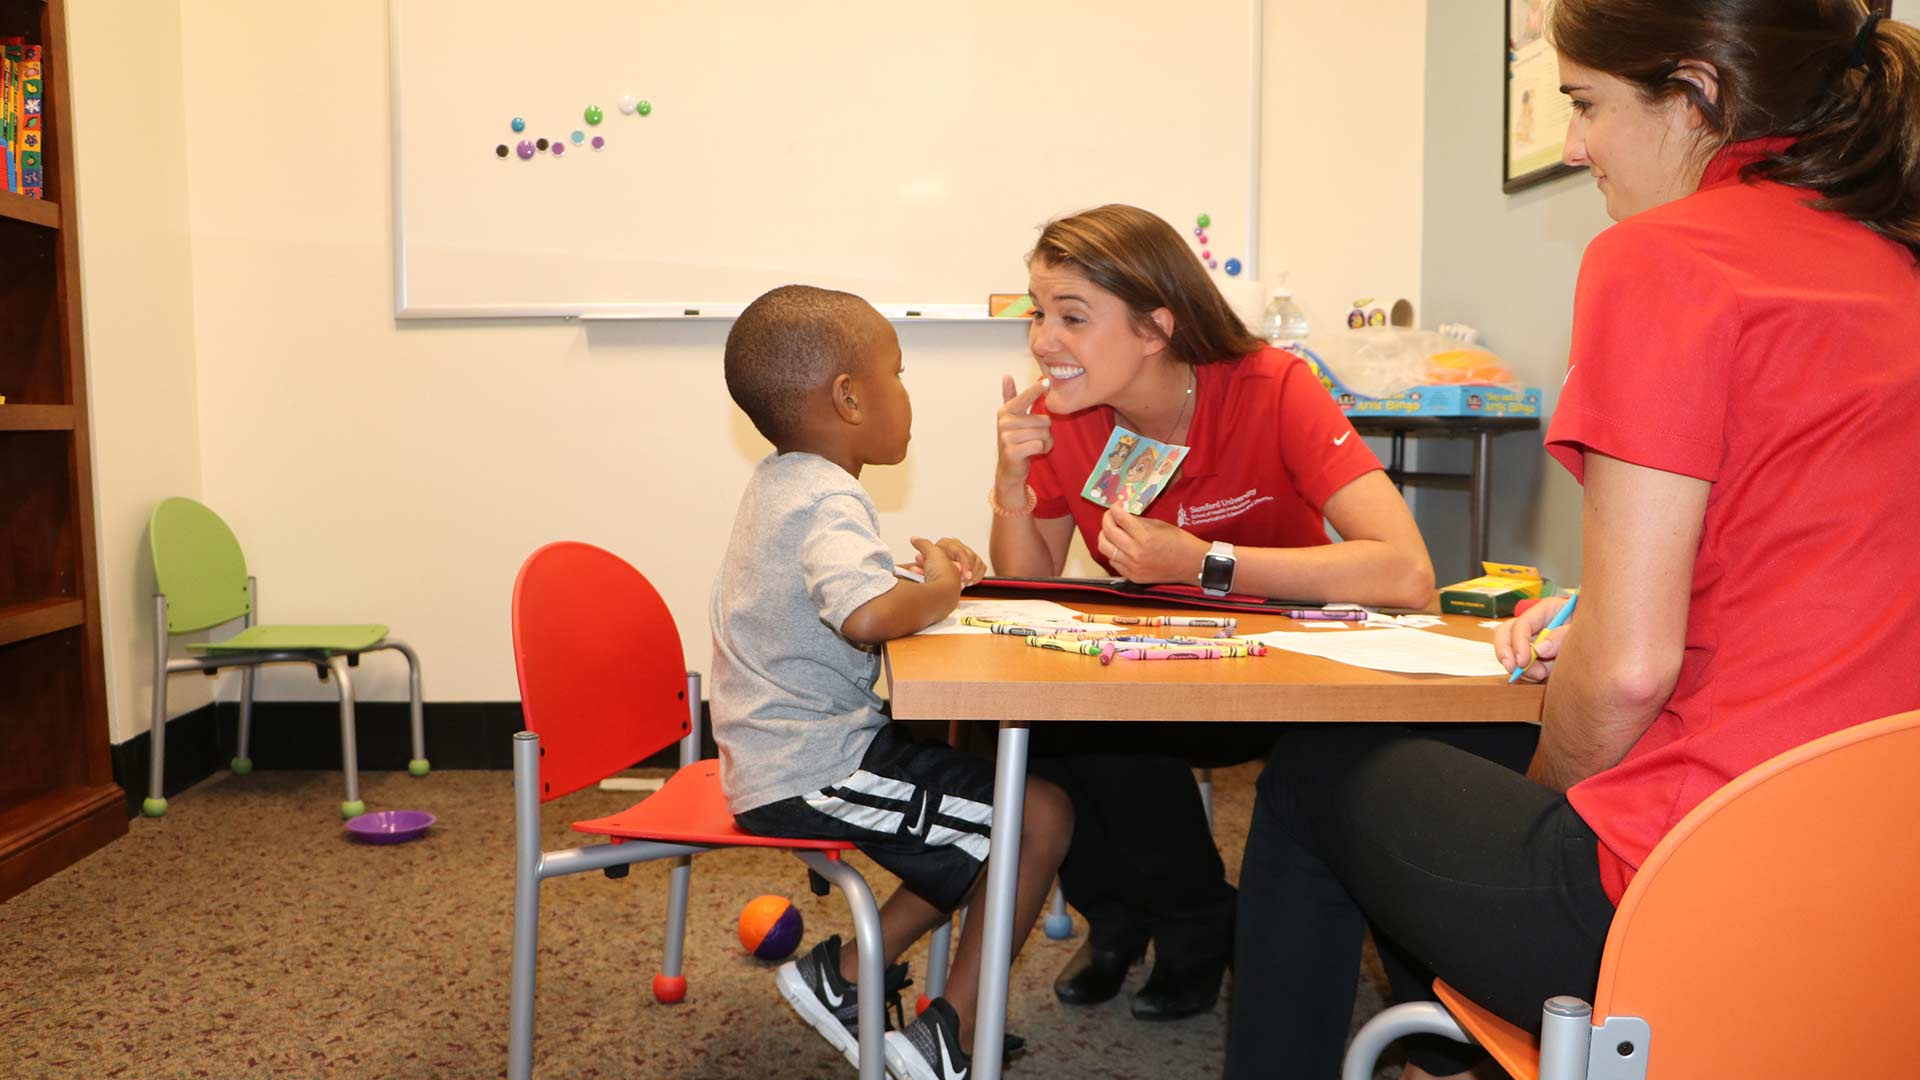 speech therapist working with young boy